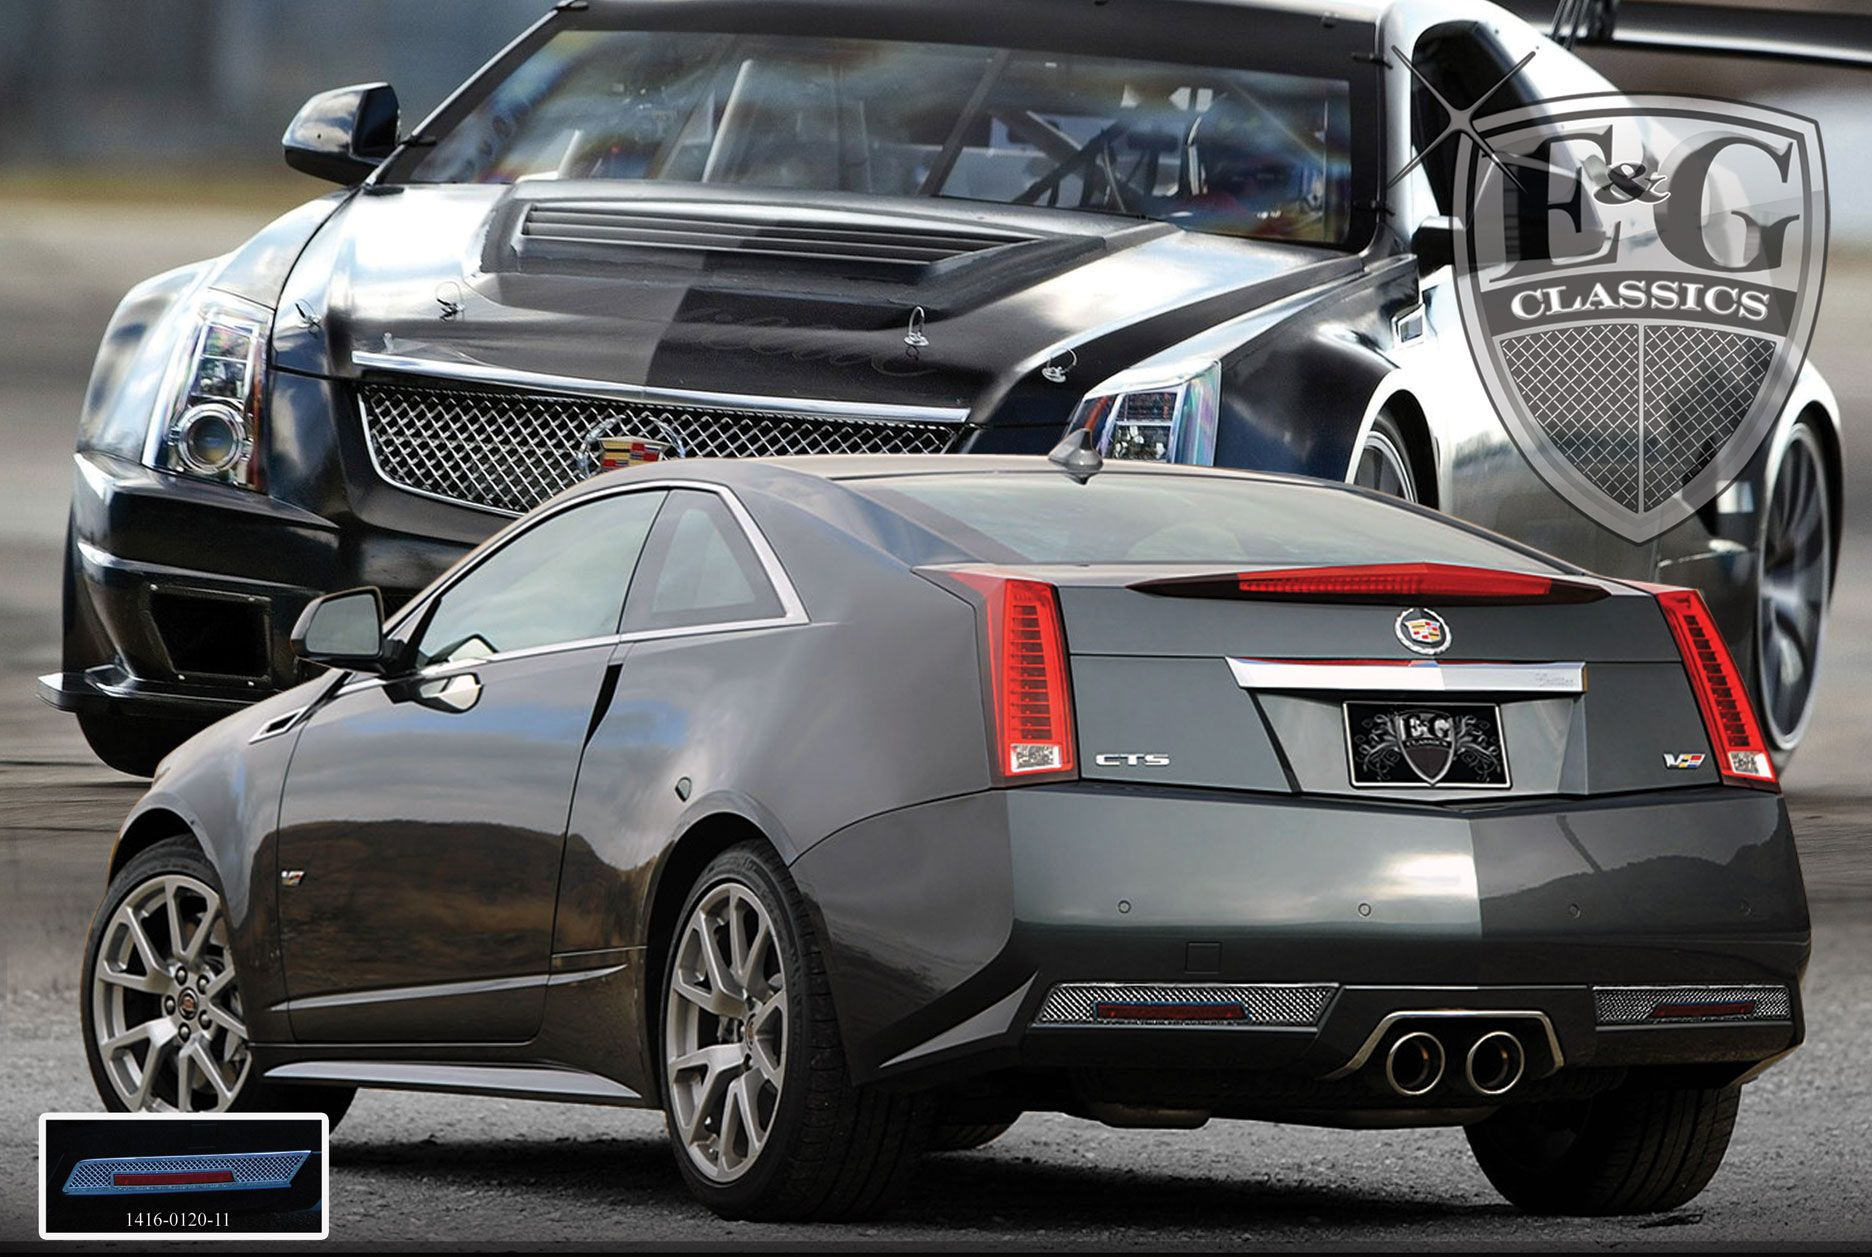 2011-13 Cadillac CTS Chrome Plated 2PC Fine Mesh Style Rear Bumper Accent Kit. Call for part number: 1416-0120-11. Please note that this part fits the CTS-V Coupe only.